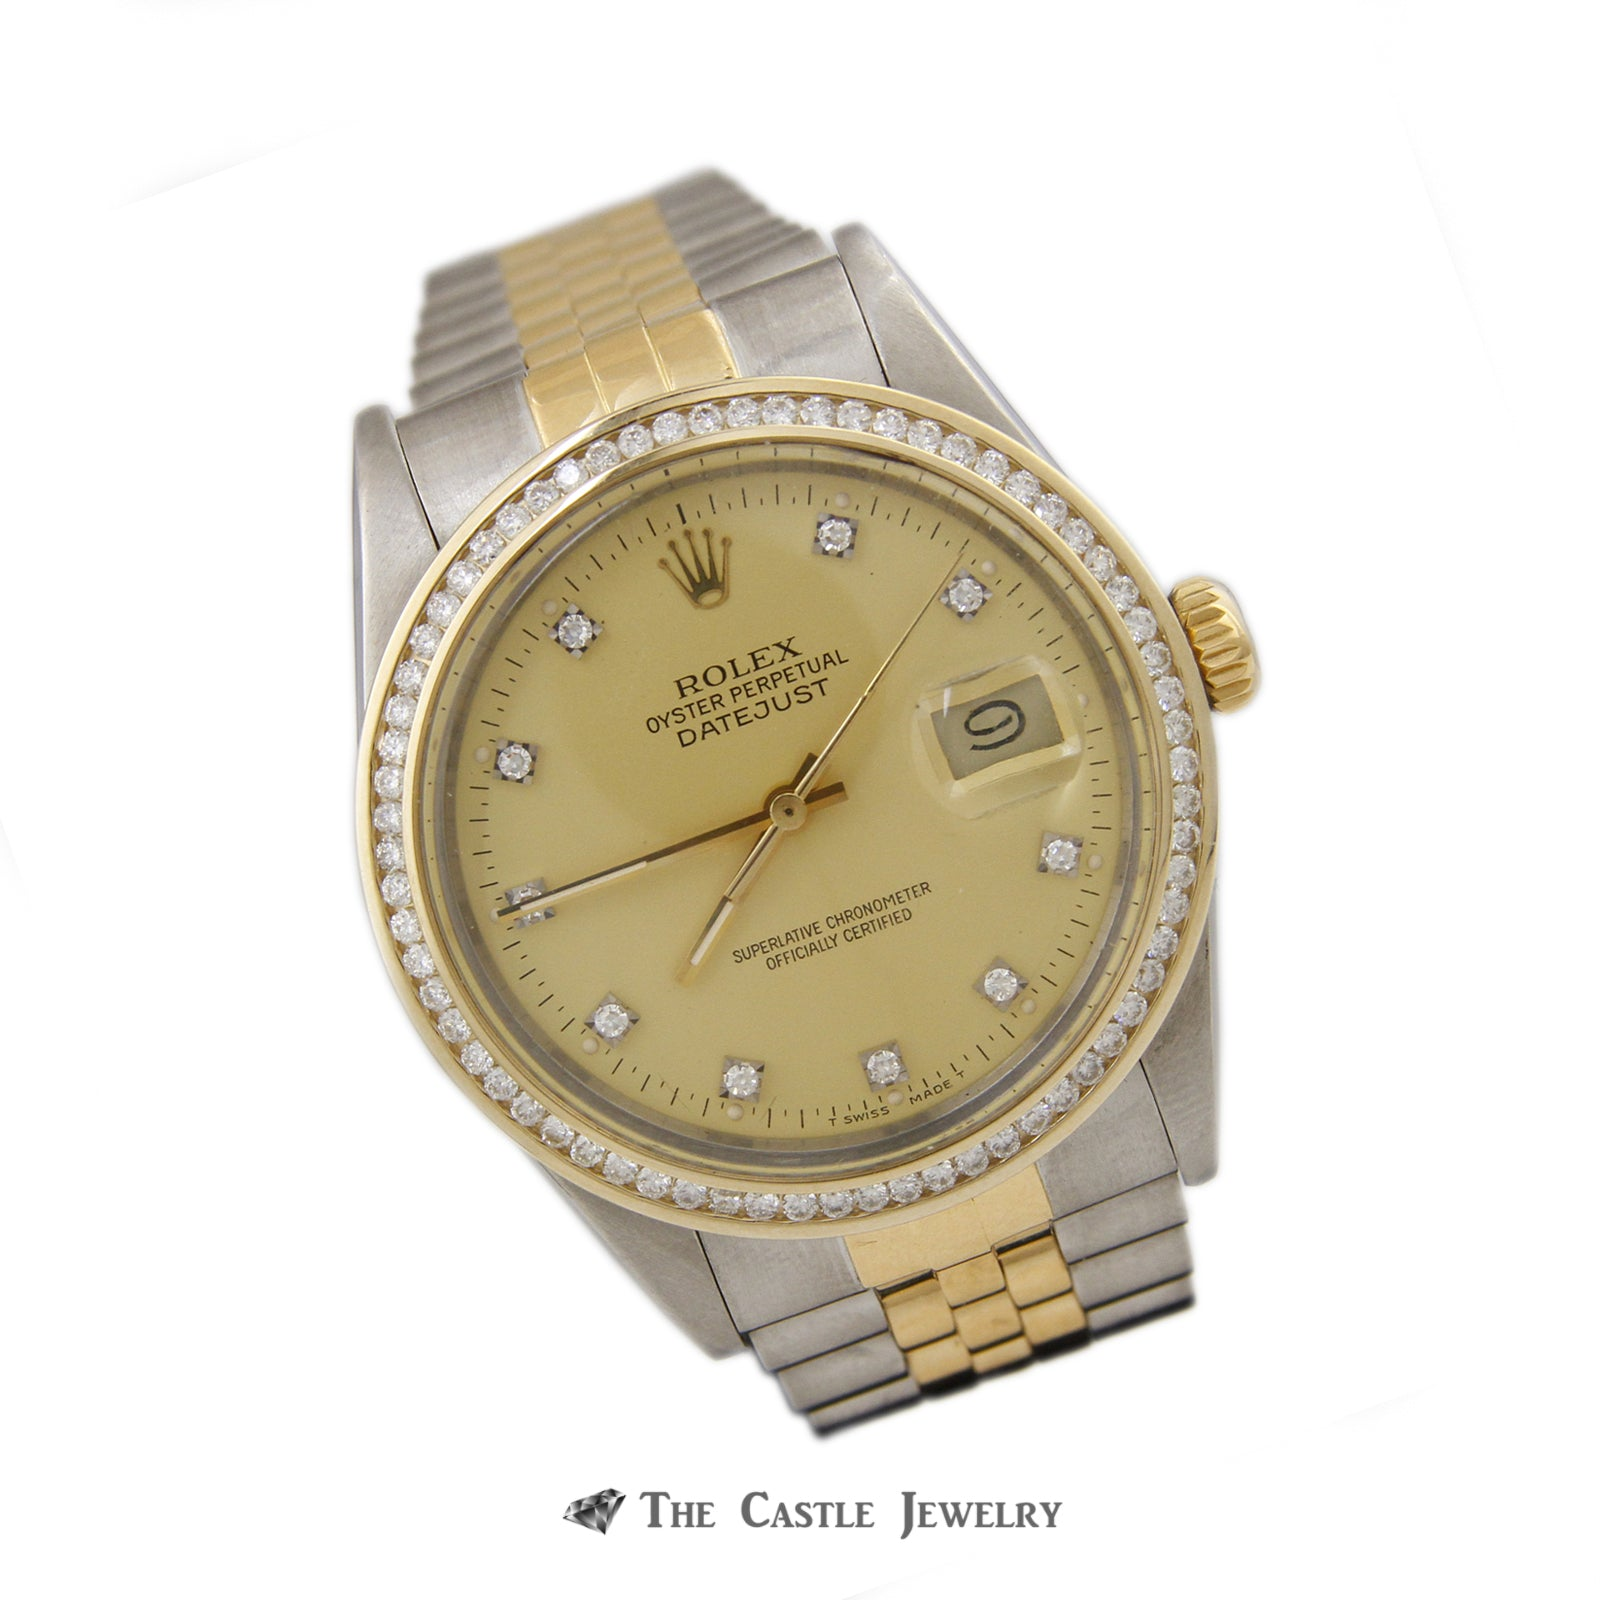 Rolex Datejust 36mm 18k/ Stainless Steel w/ Diamond Dial and Bezel 16013